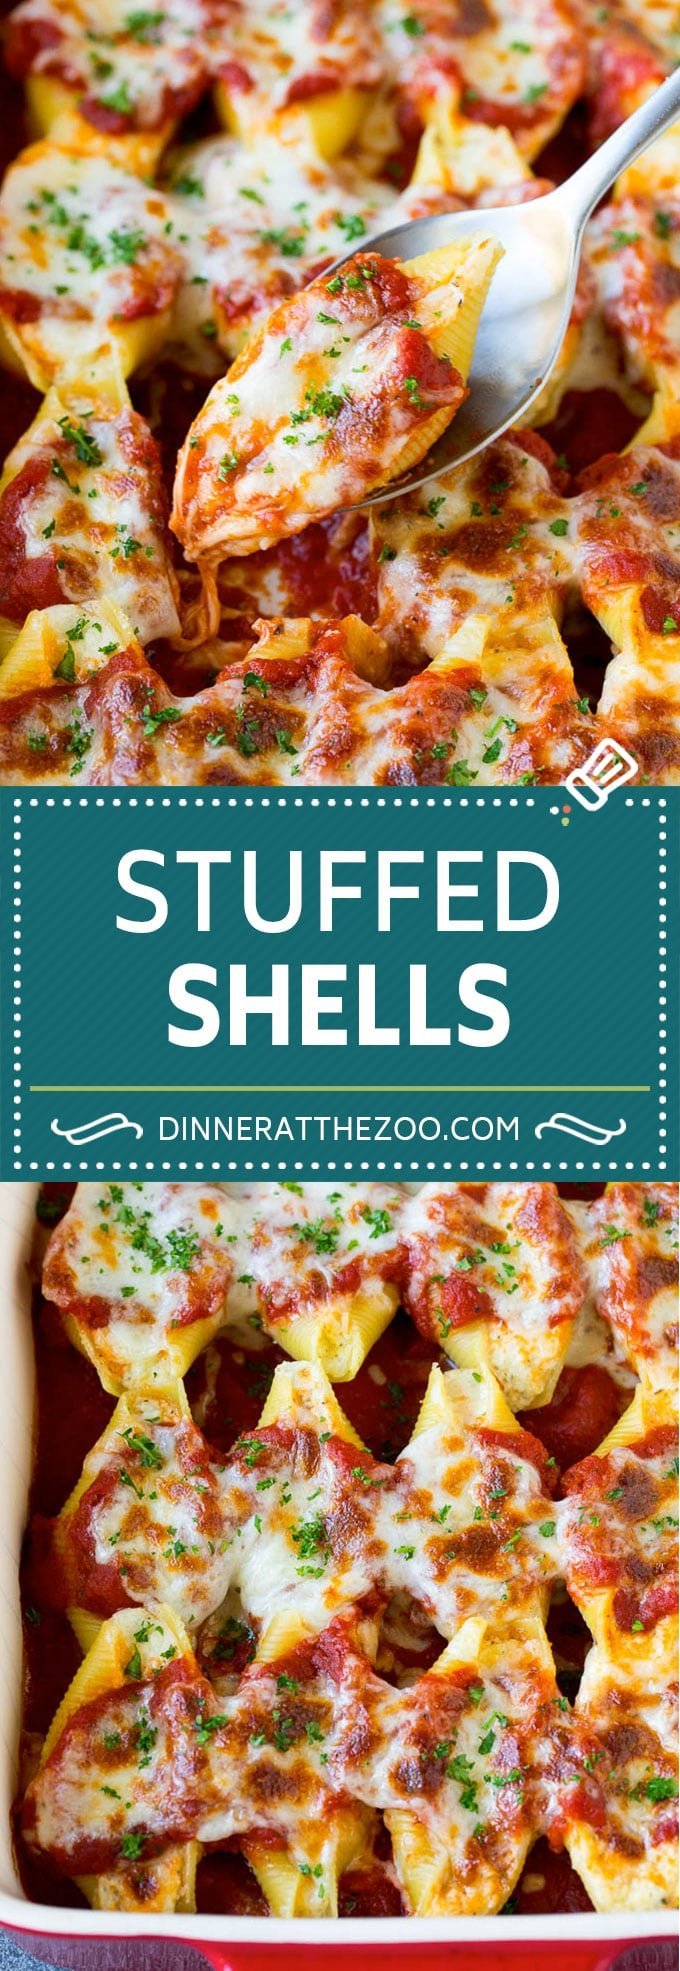 Baked stuffed shells filled with three types of cheese and topped with marinara sauce. #pasta #dinneratthezoo